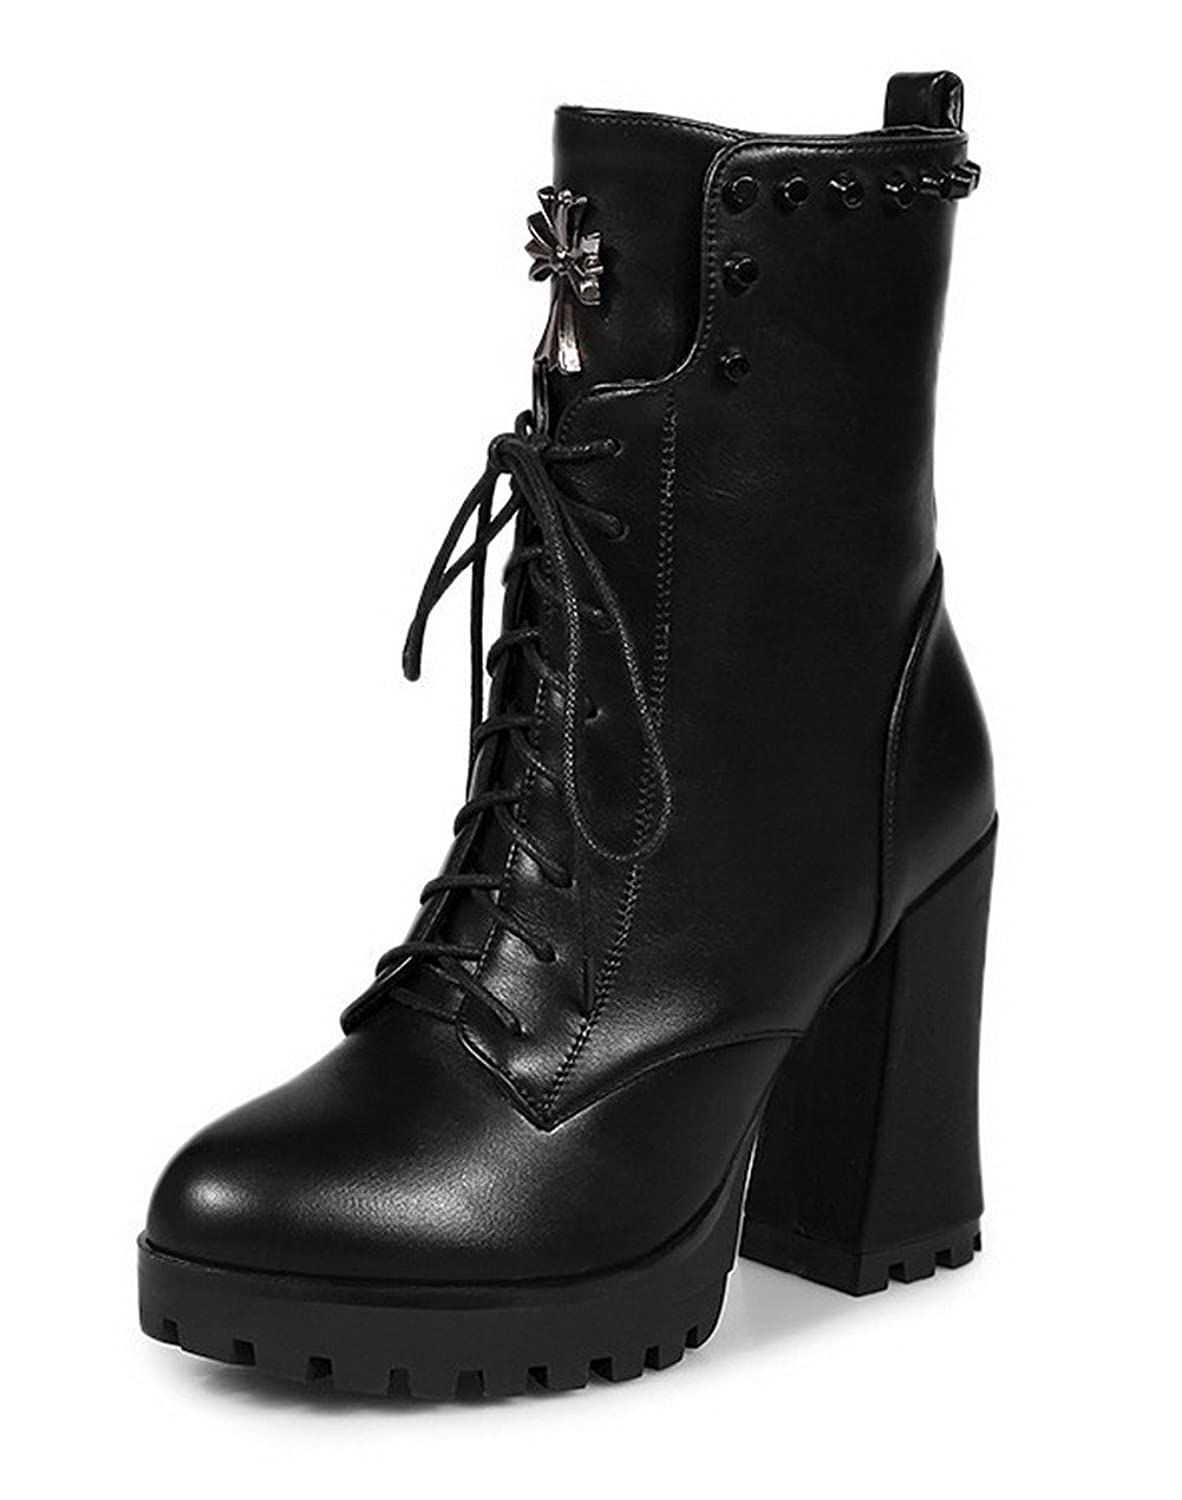 AllhqFashion Women's High-Heels Solid Round Closed Toe Soft Material Zipper Boots